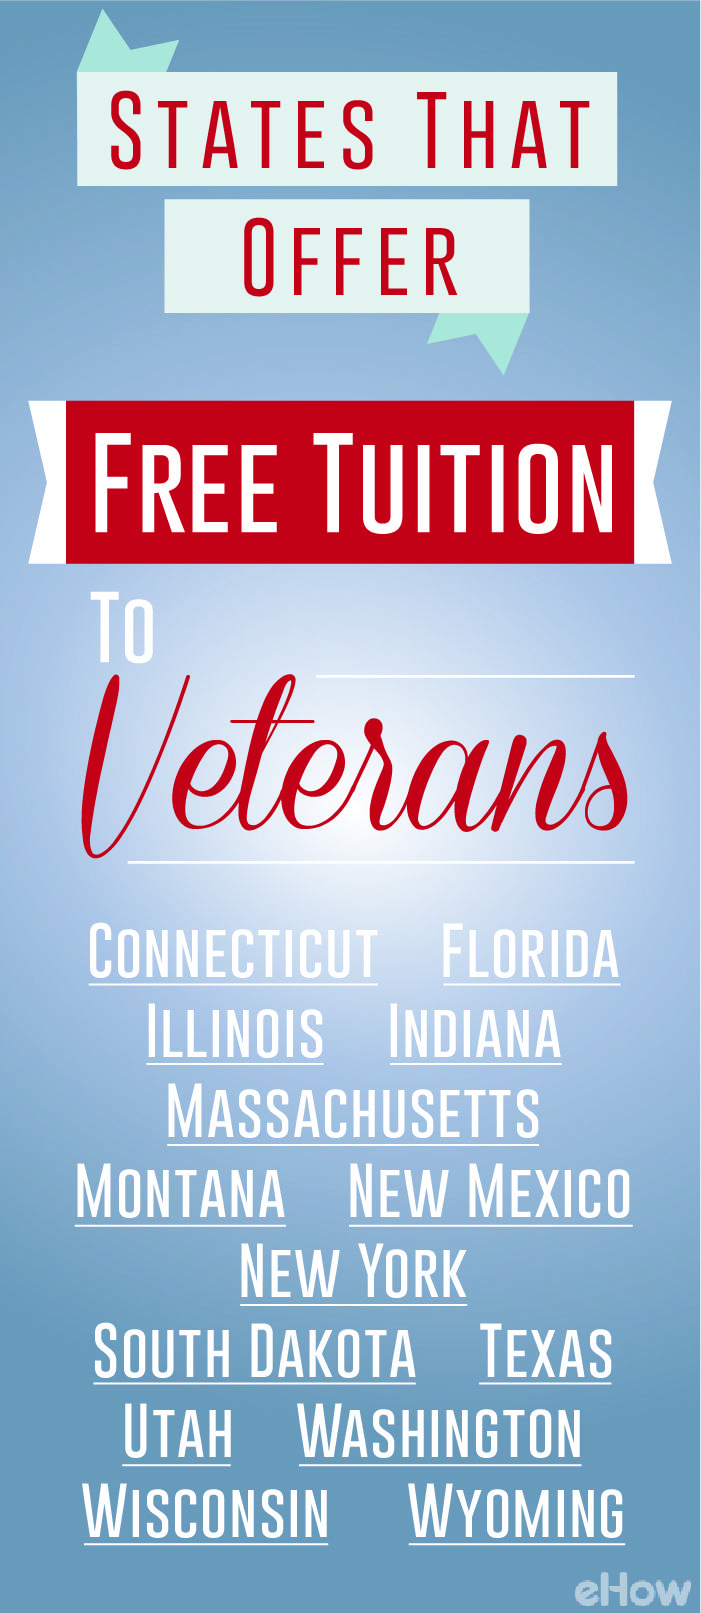 How to dress an apple shaped figure ehow - Get More Info On Each State That Offers Free Tuition For Veterans Http